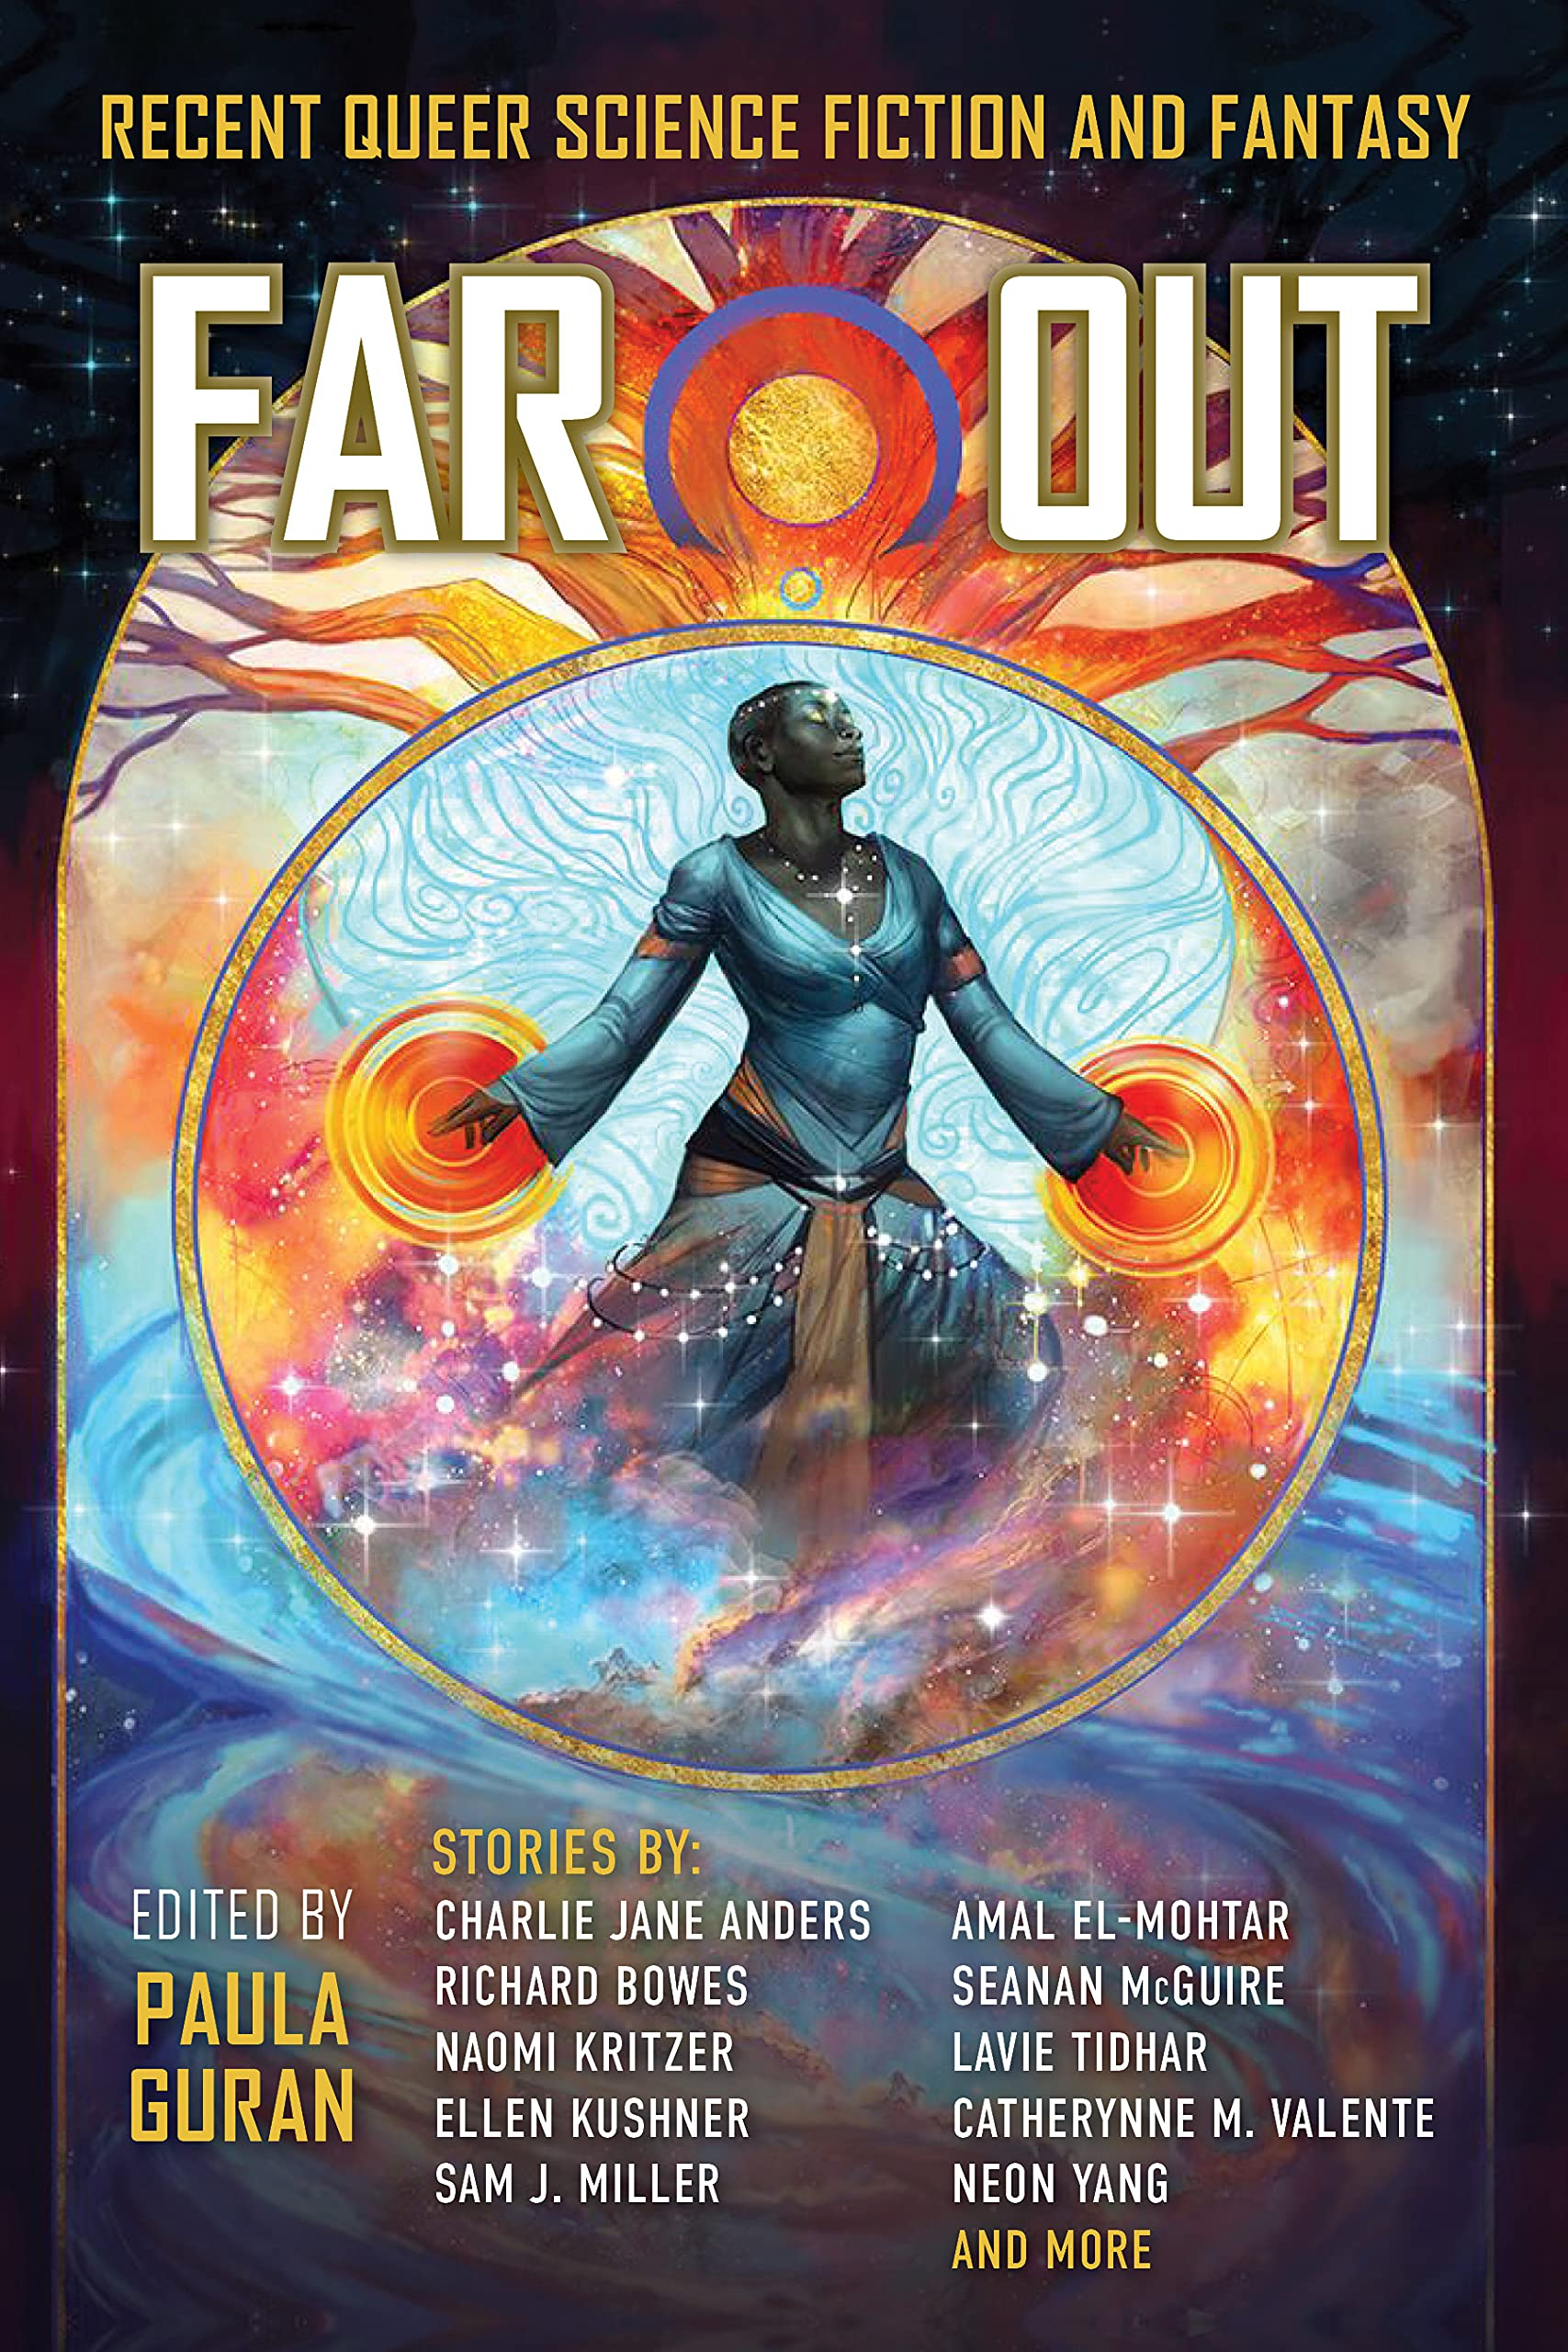 Far Out Recent Queer Science Fiction and Fantasy